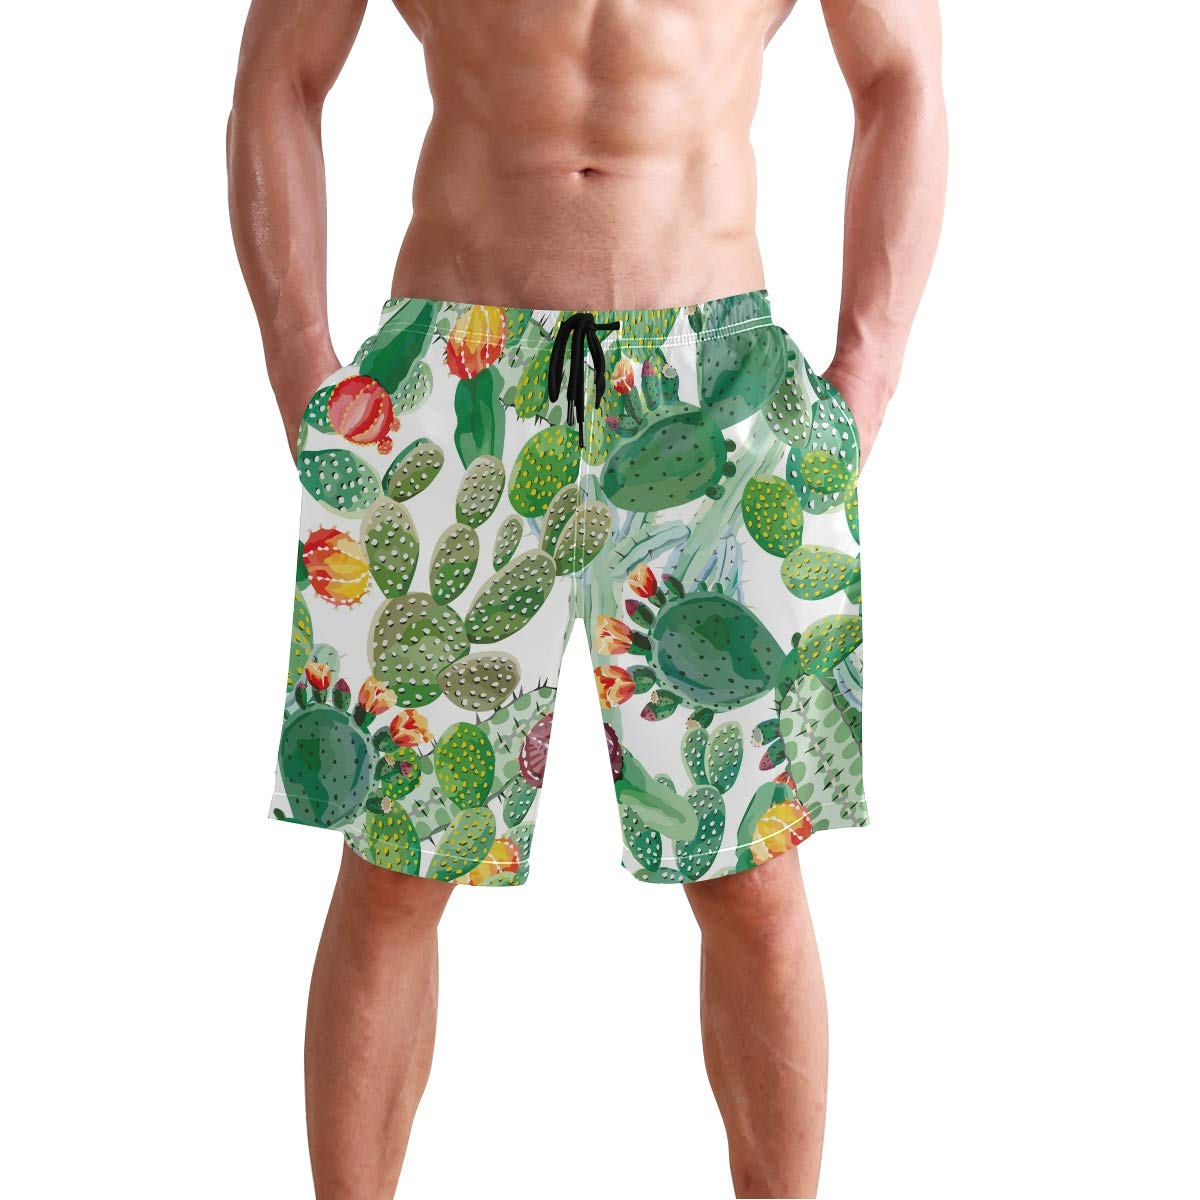 Mens Swim Trunks Tropical Cactus Colorful Flower Floral Quick Dry Beach Board Short with Mesh Lining